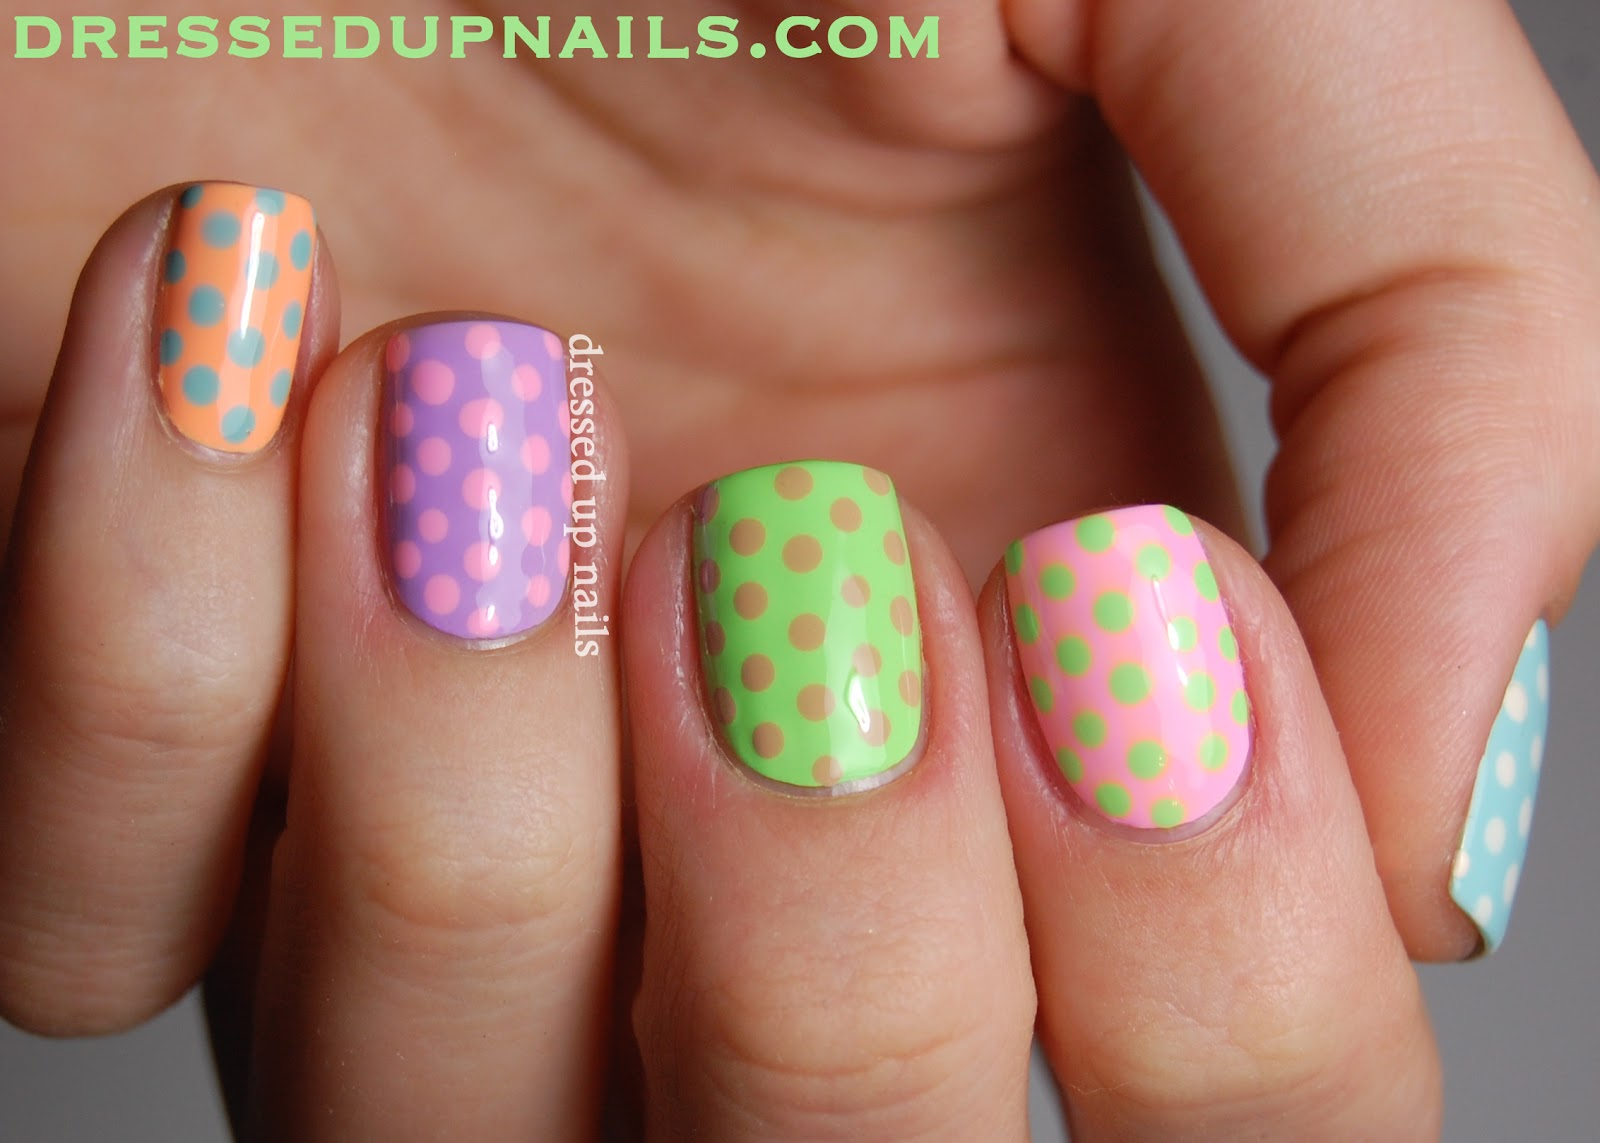 Dressed Up Nails - pastel skittle nail art with Lime Crime polishes